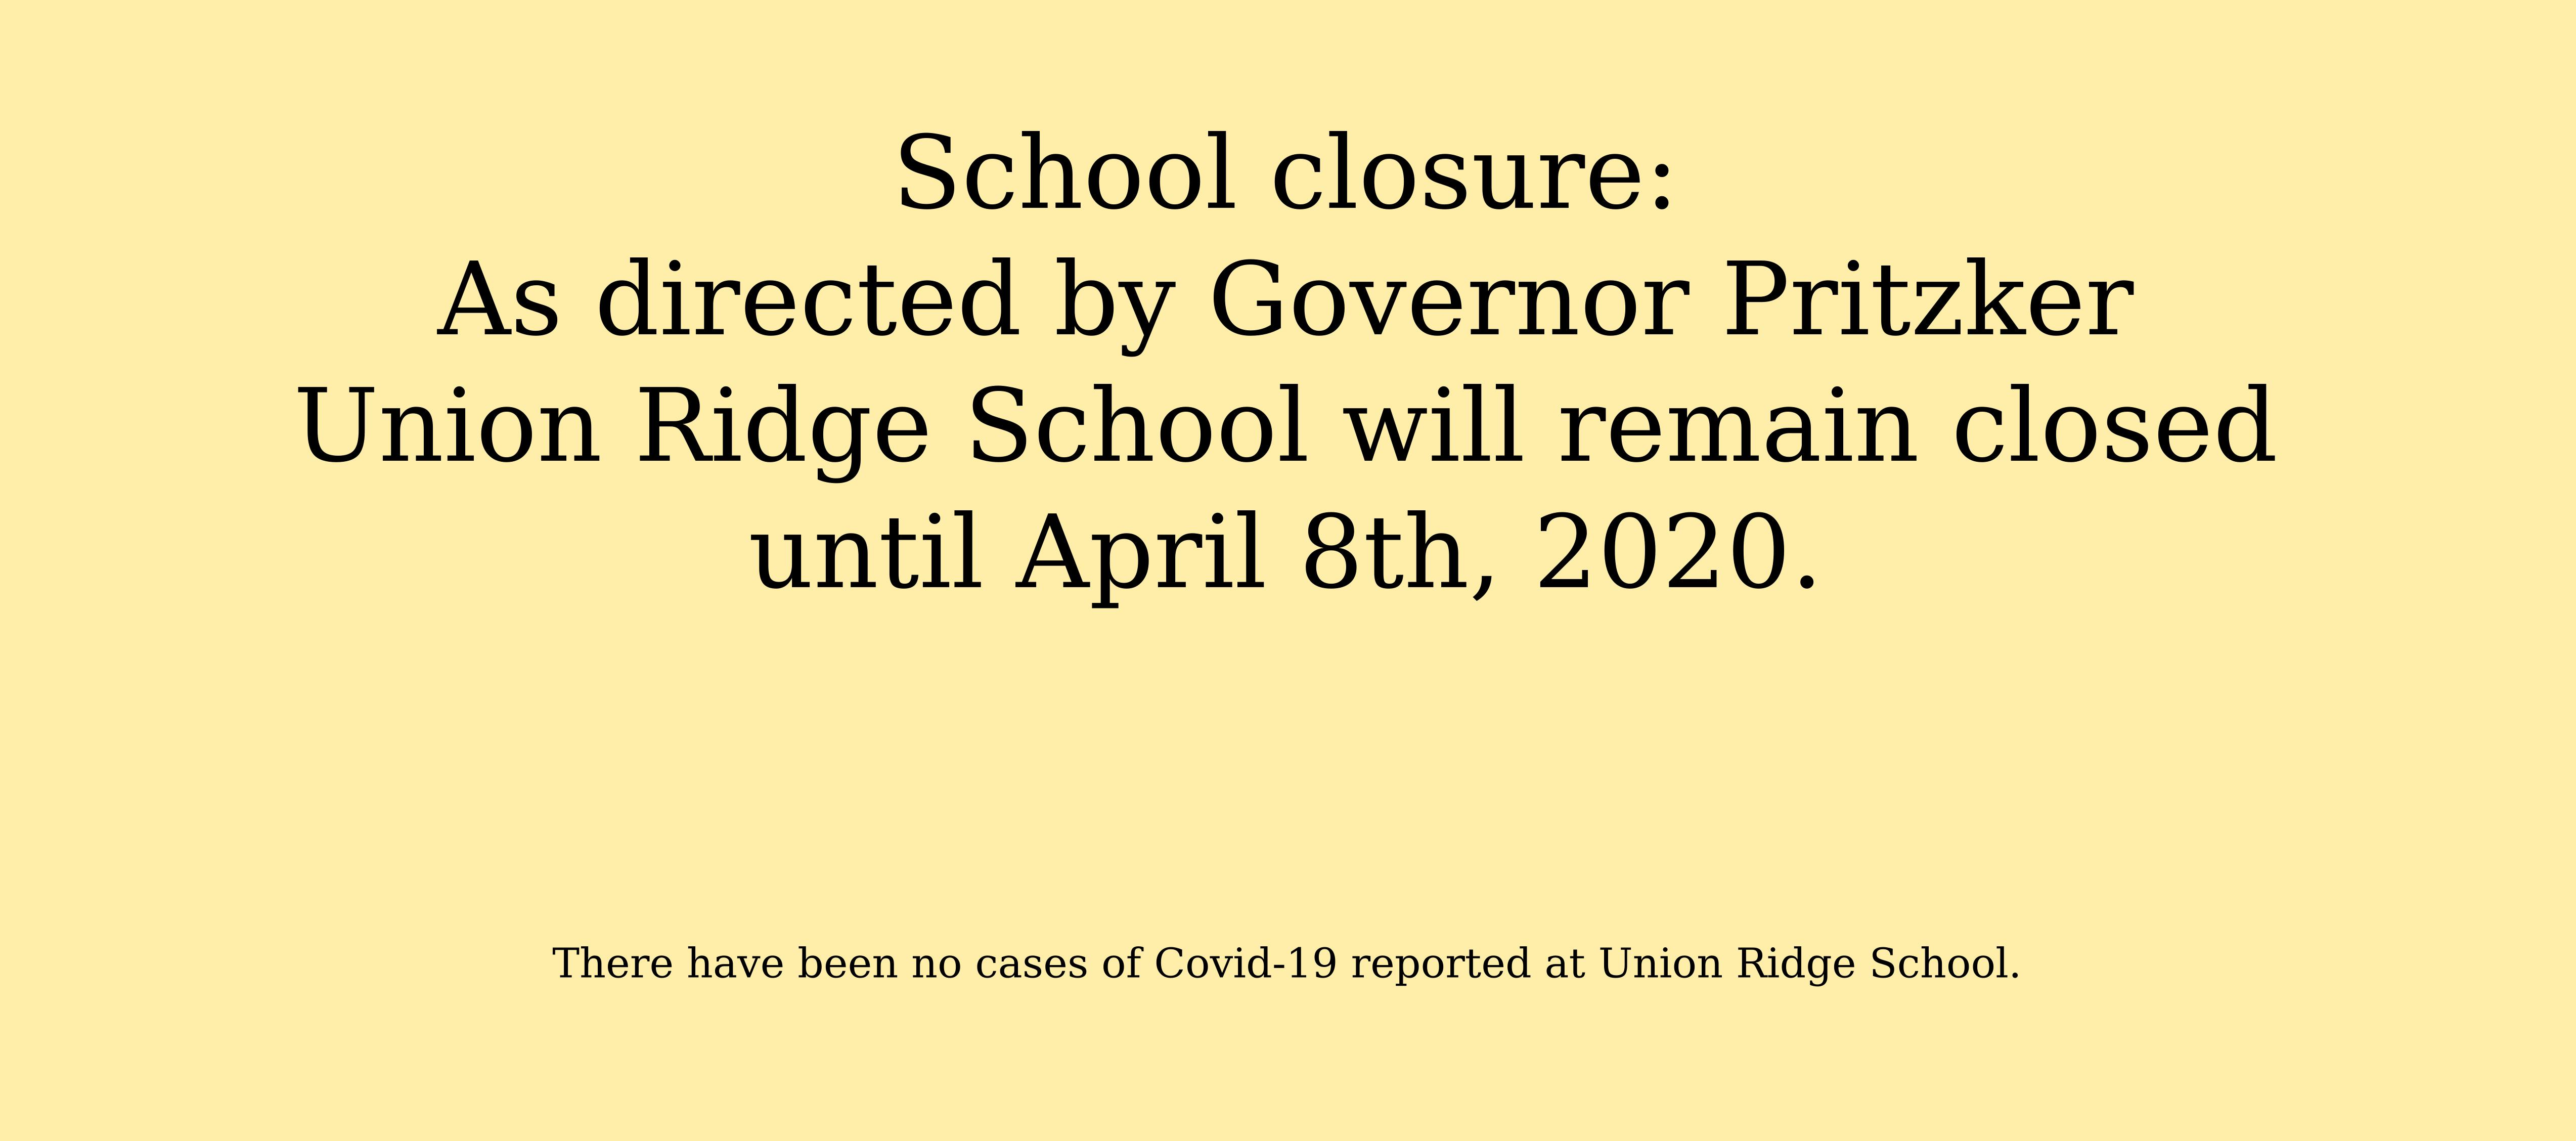 School is closed until April 8th